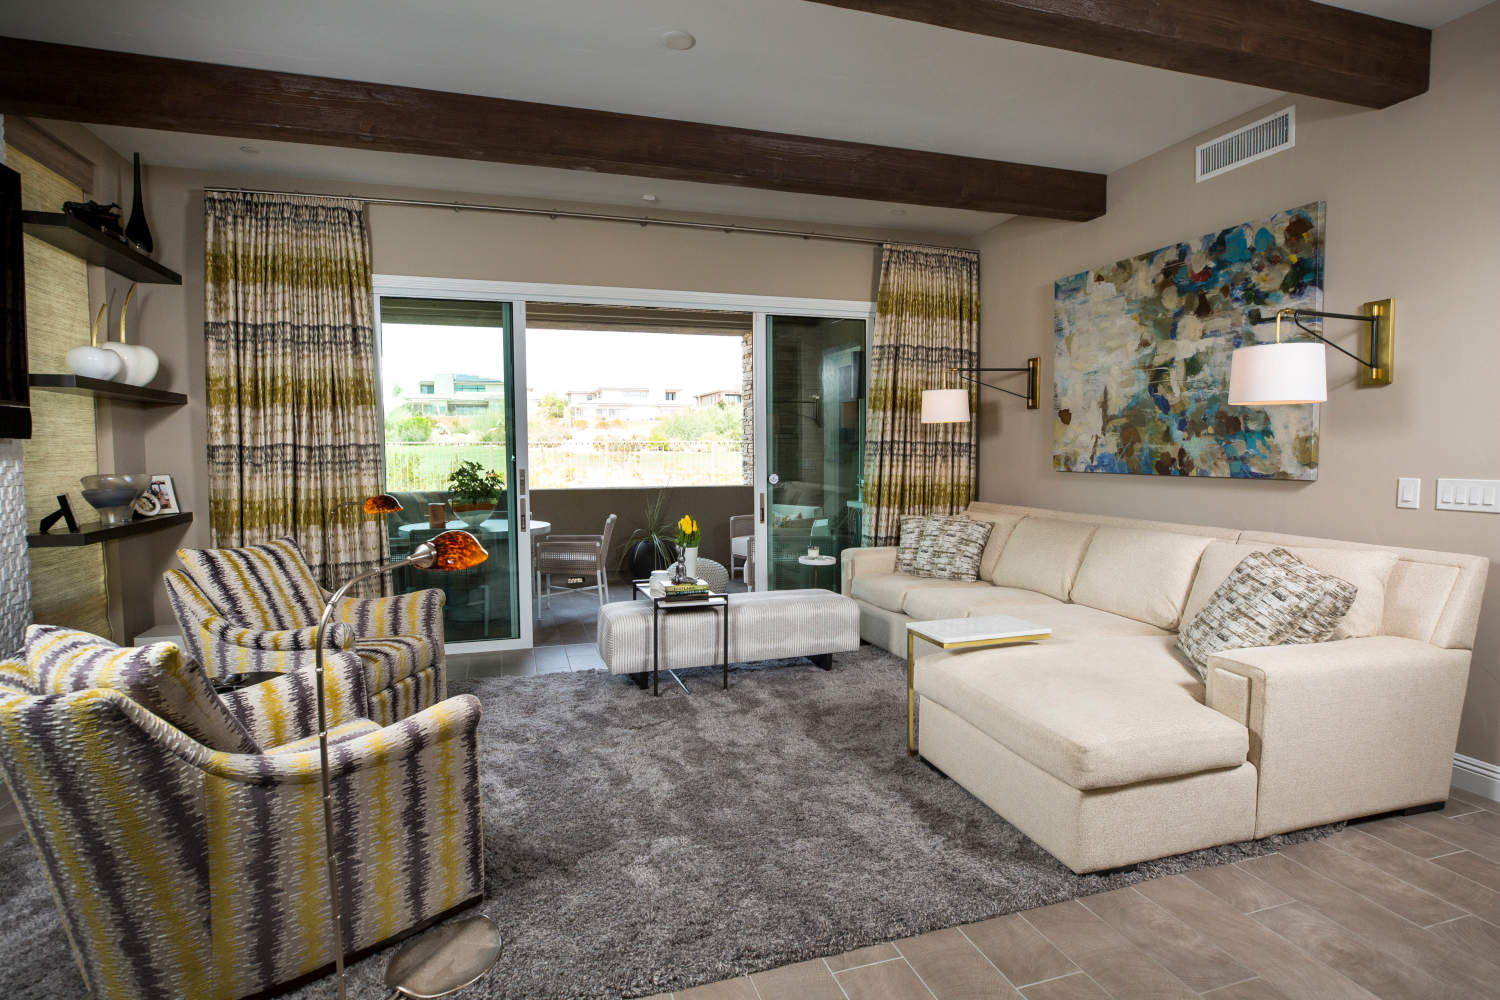 Family room with two yellow and black chairs and cream sectional.